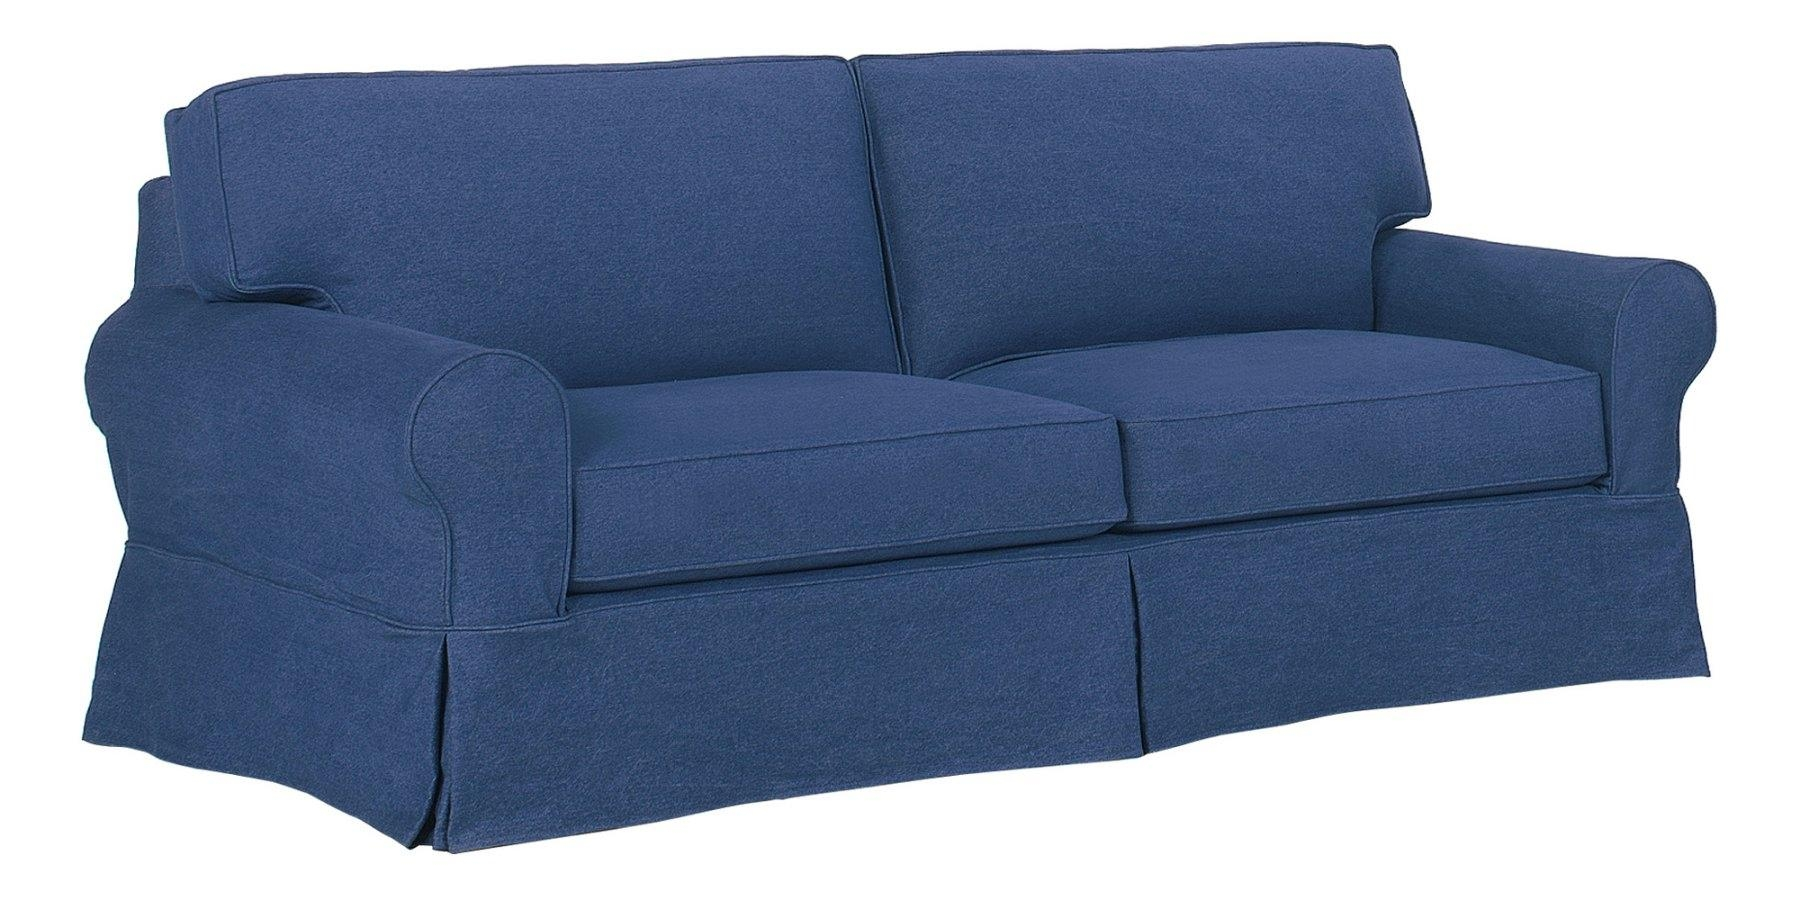 Denim Slipcovered Sofa With Chaise & Ottoman | Club Furniture In Denim Sofa Slipcovers (View 2 of 20)